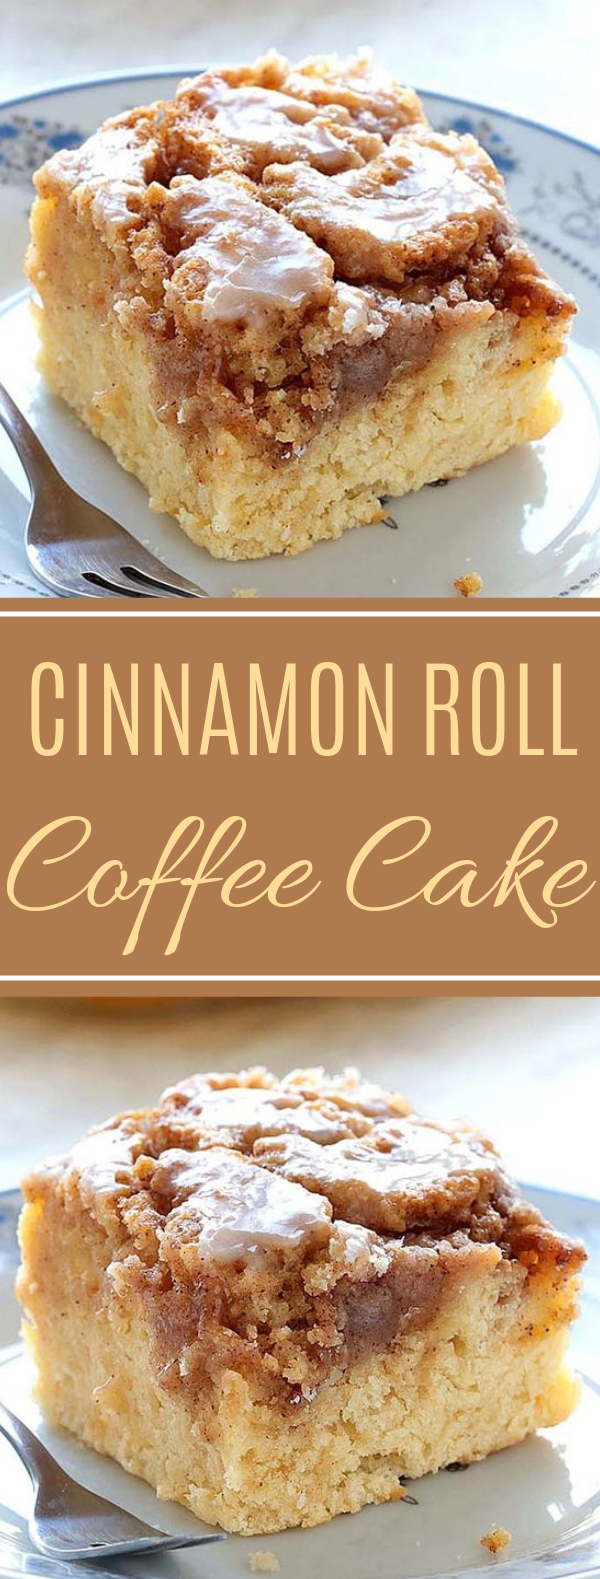 Easy Cinnamon Roll Coffee Cake #dessert #easy